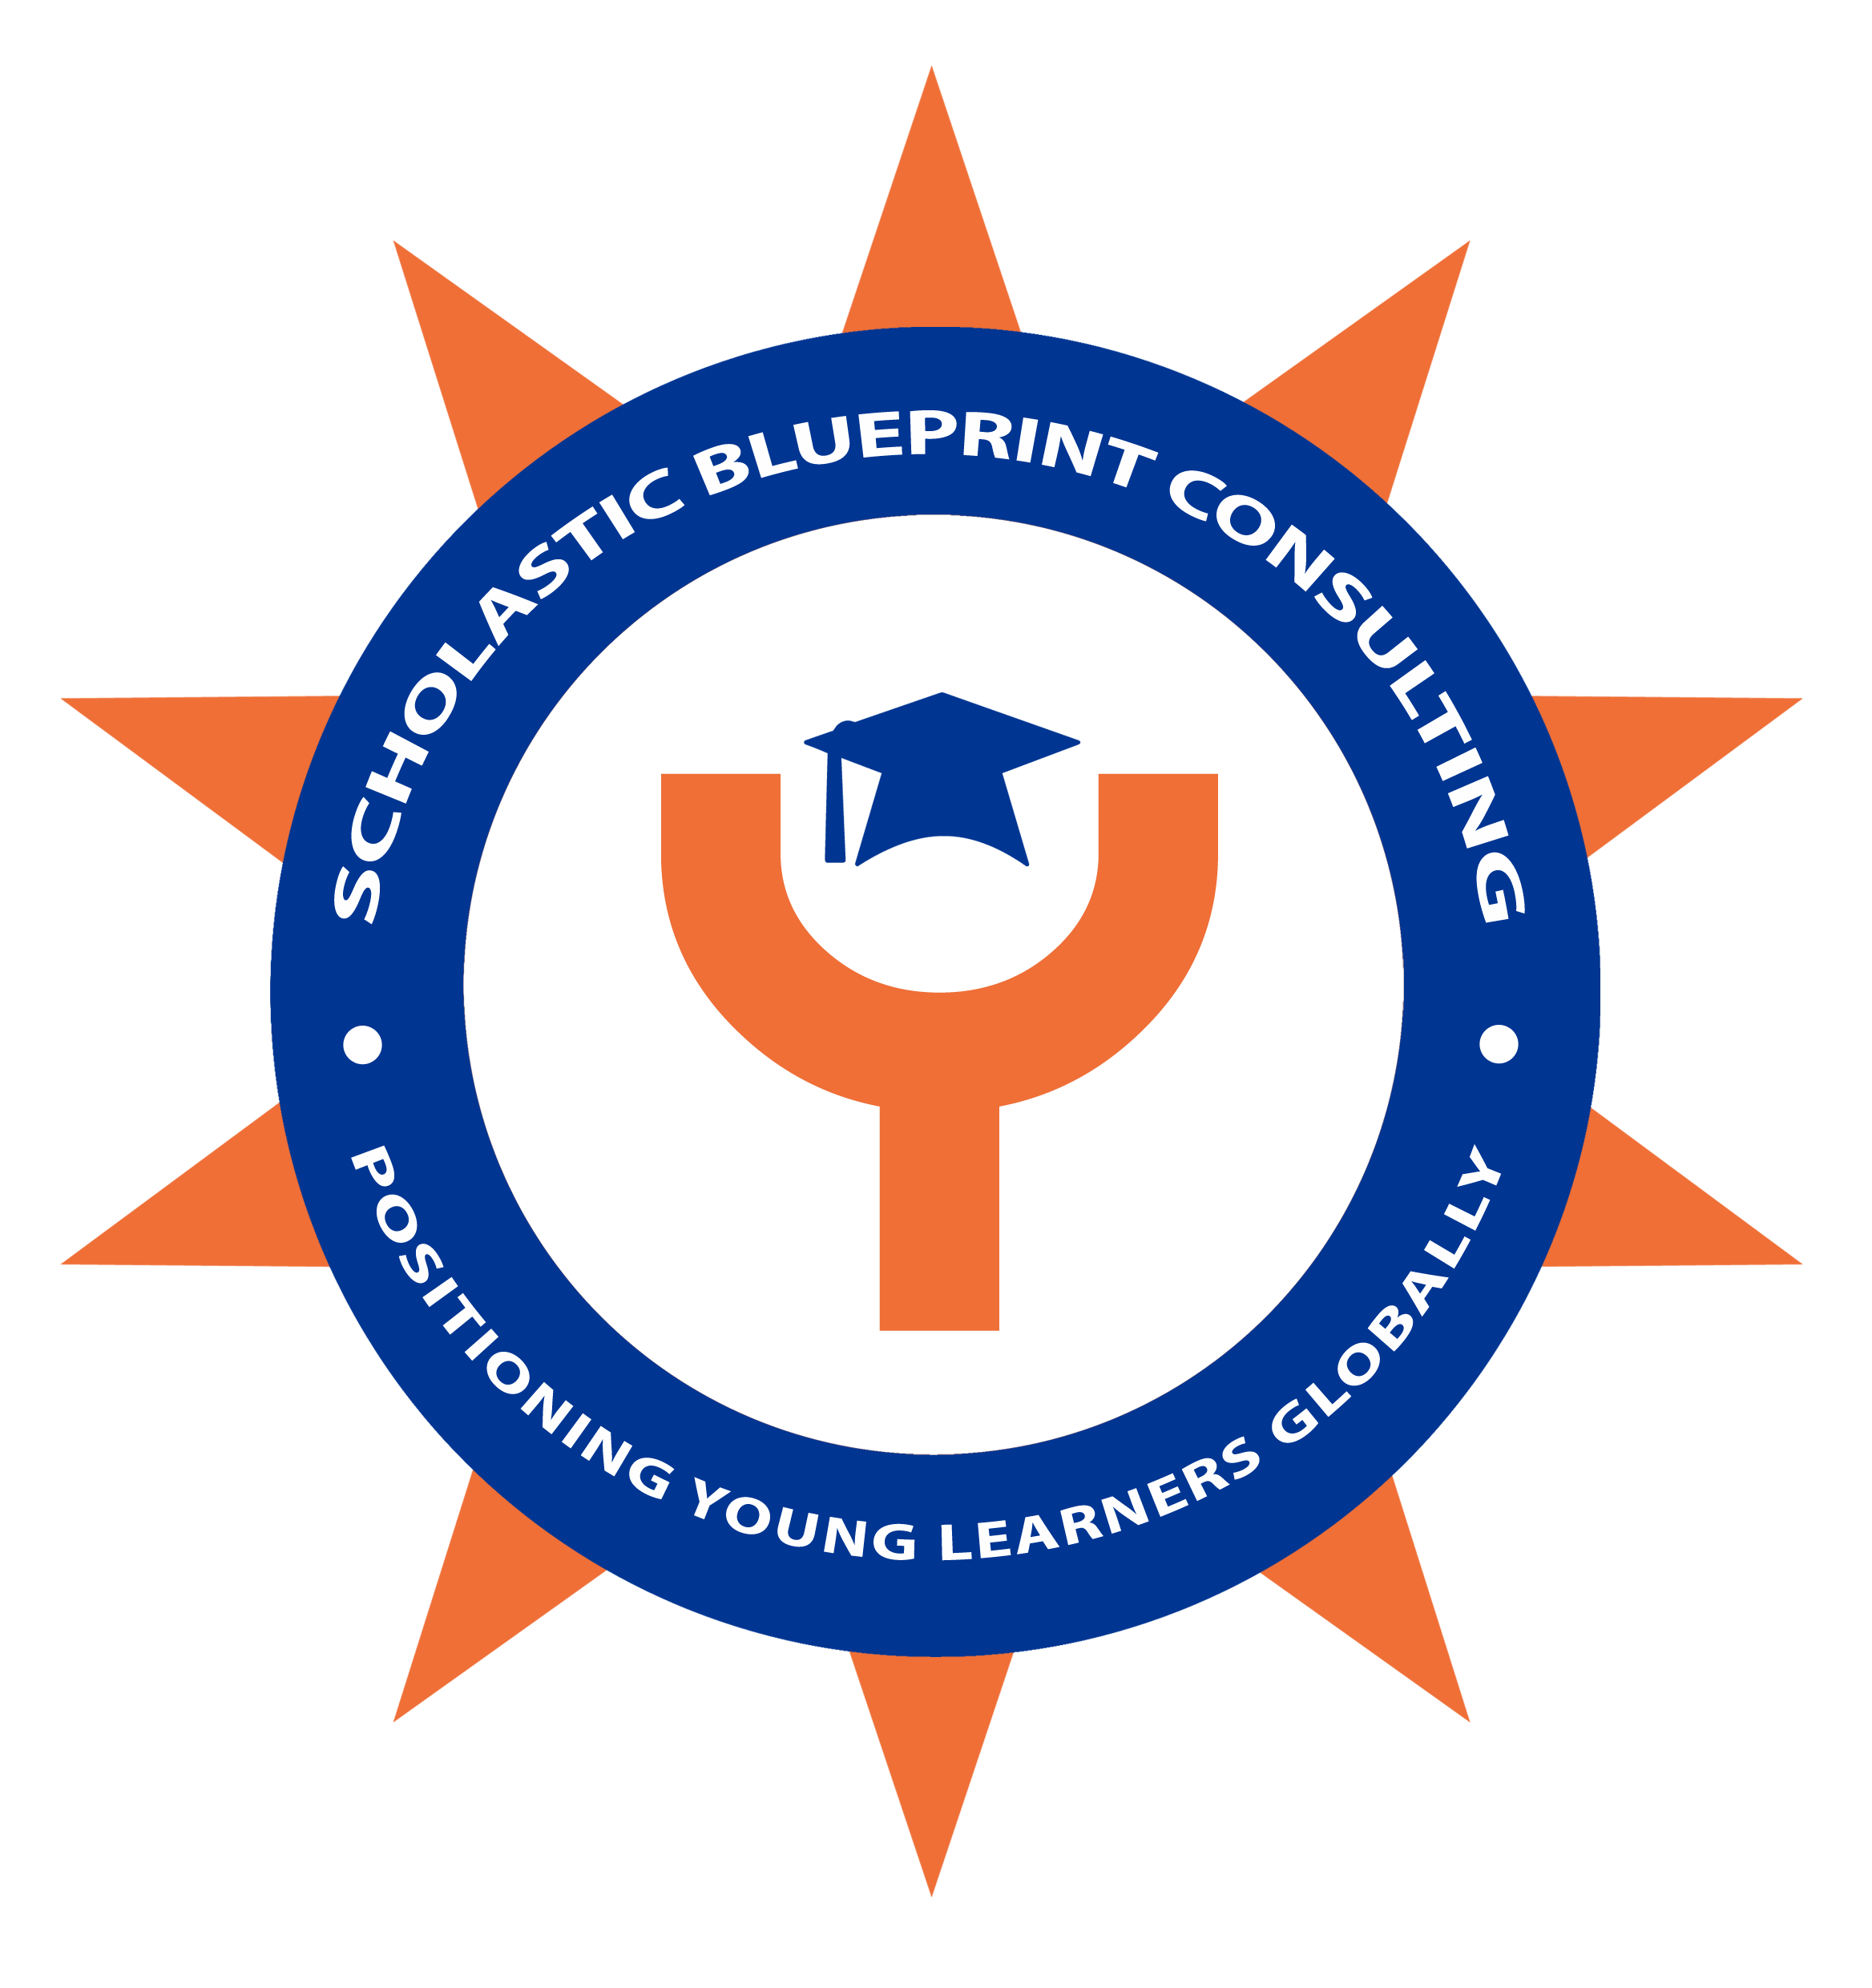 About us scholastic blueprint consulting scholastic blueprint consulting logo malvernweather Choice Image